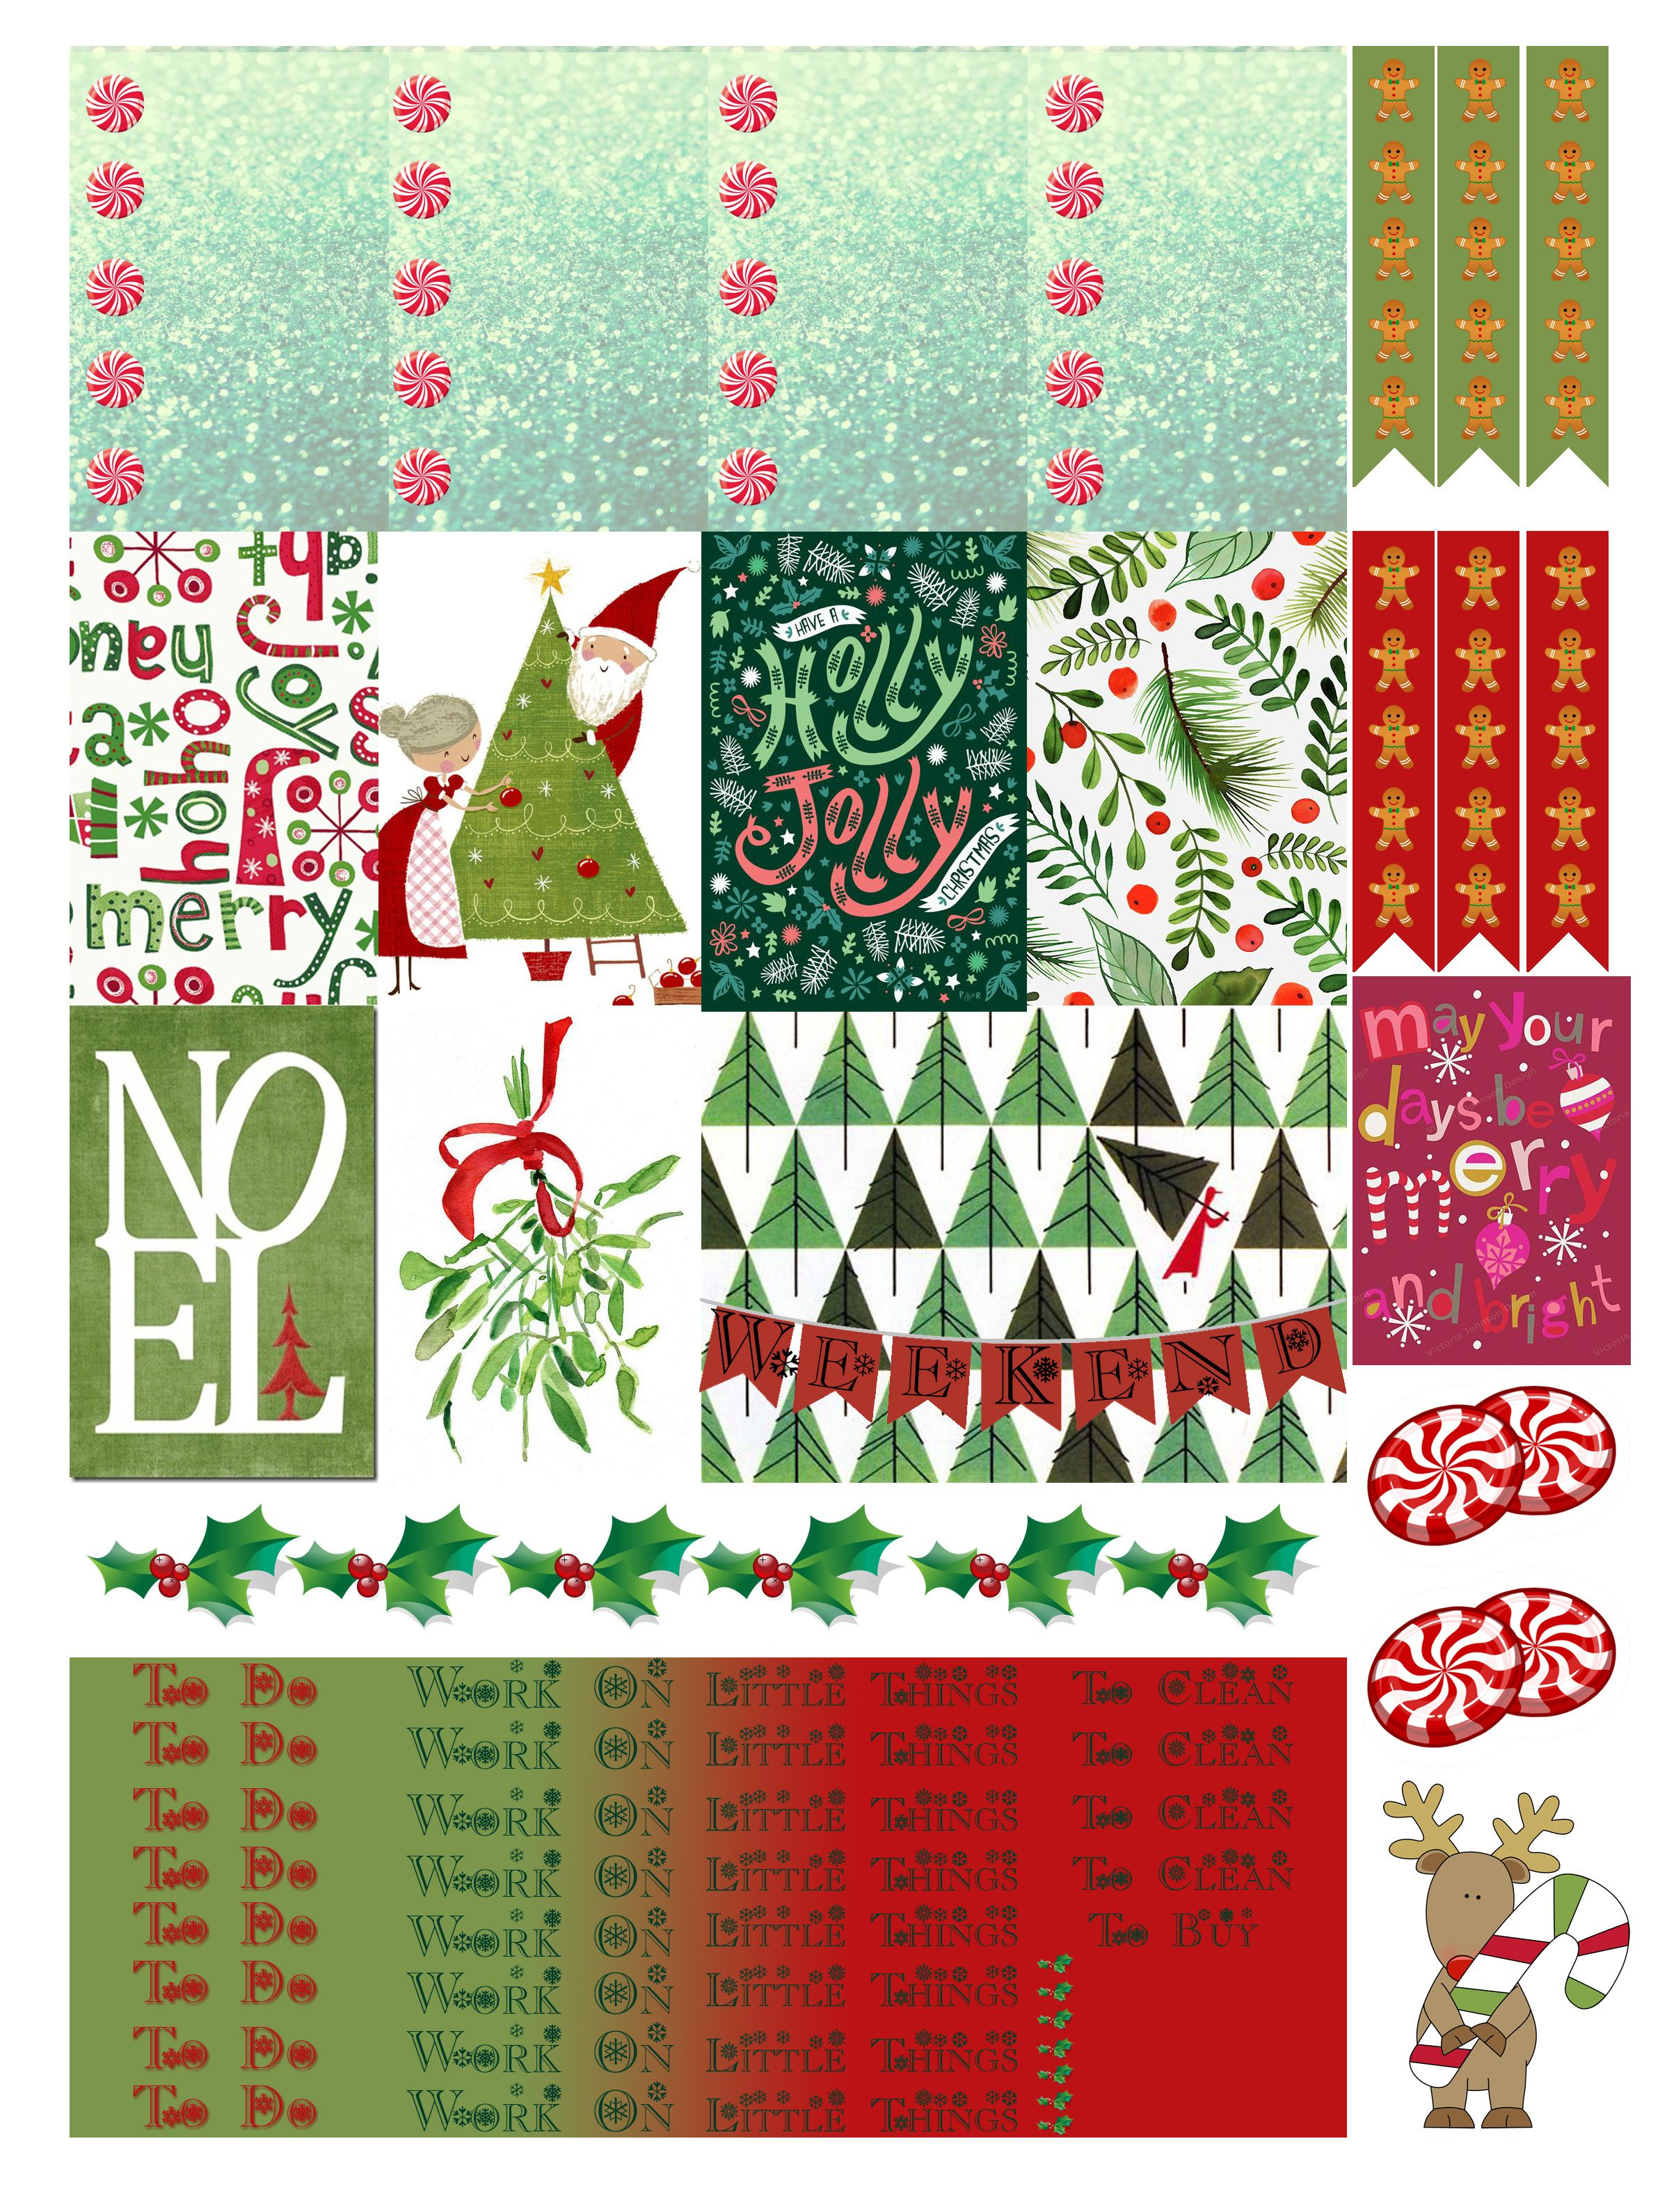 Free Printable Christmas Planners Stickers From Monica Alicia - Free Printable Holiday Stickers